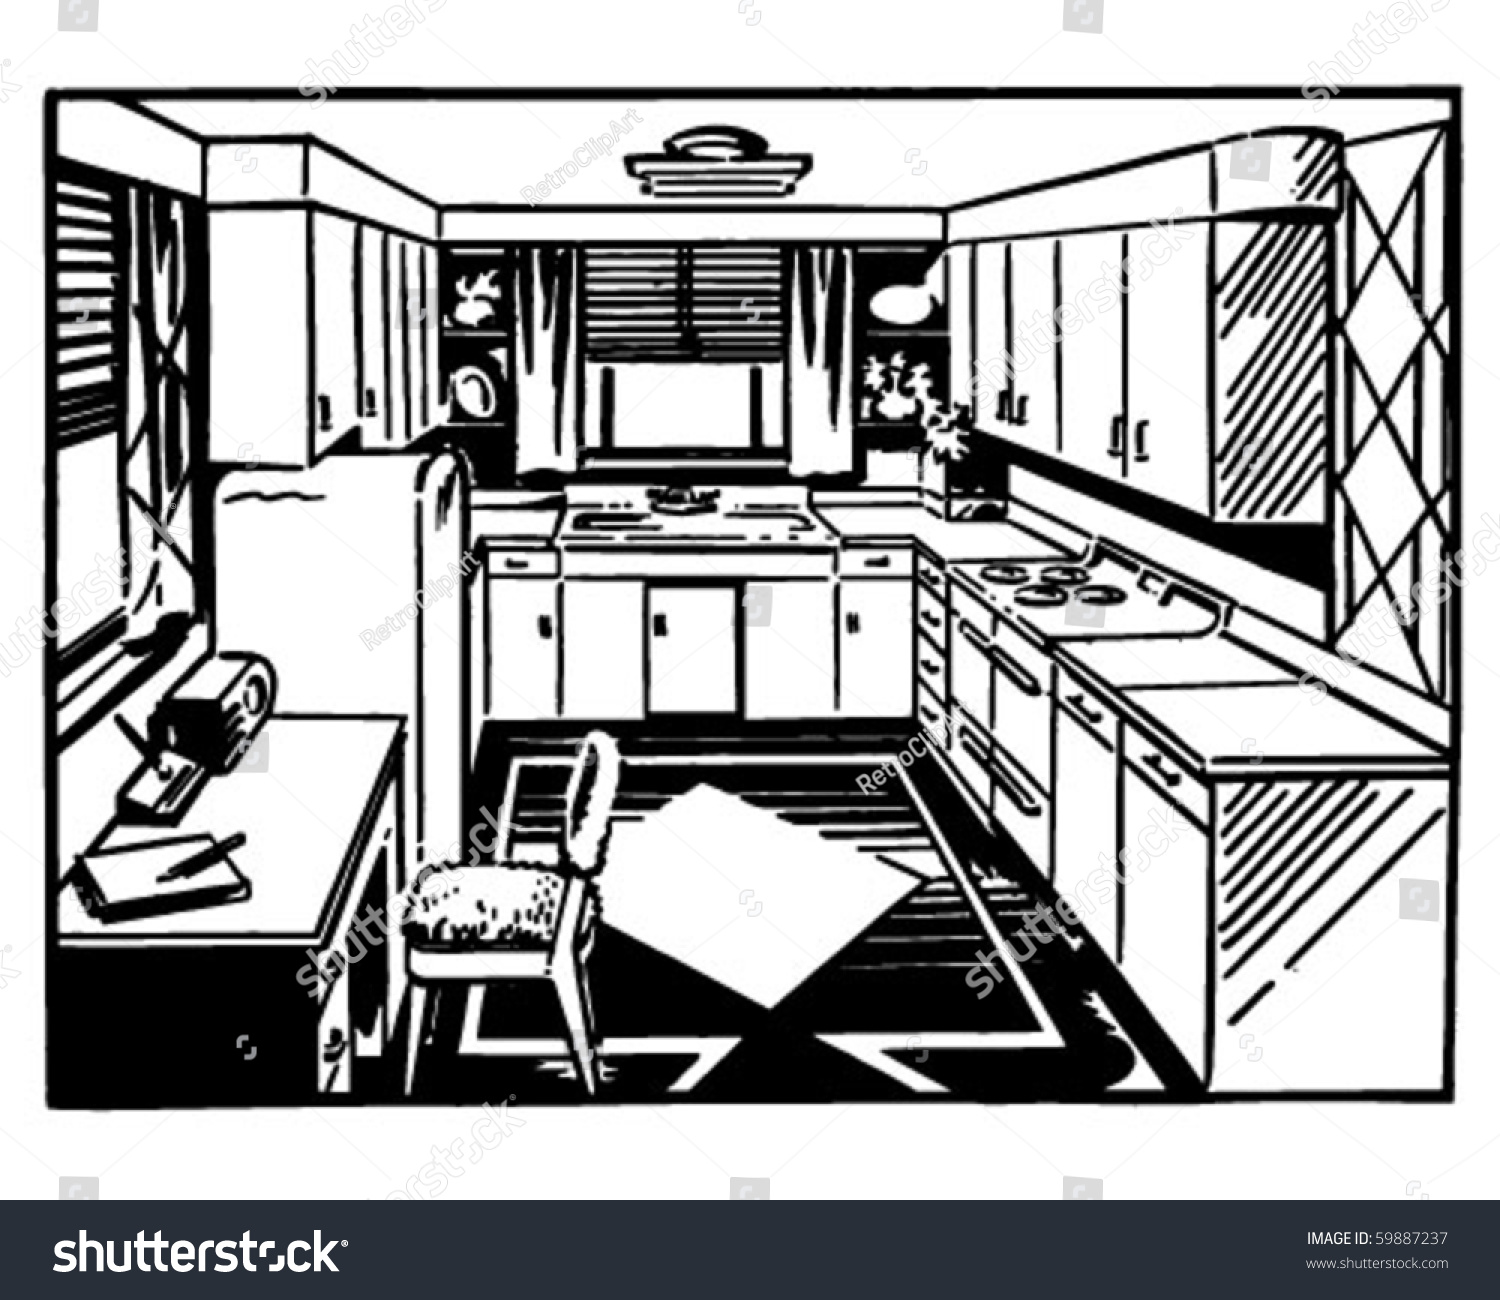 Kitchen Window Clip Art: Retro Kitchen 2 Clip Art Stock Vector 59887237